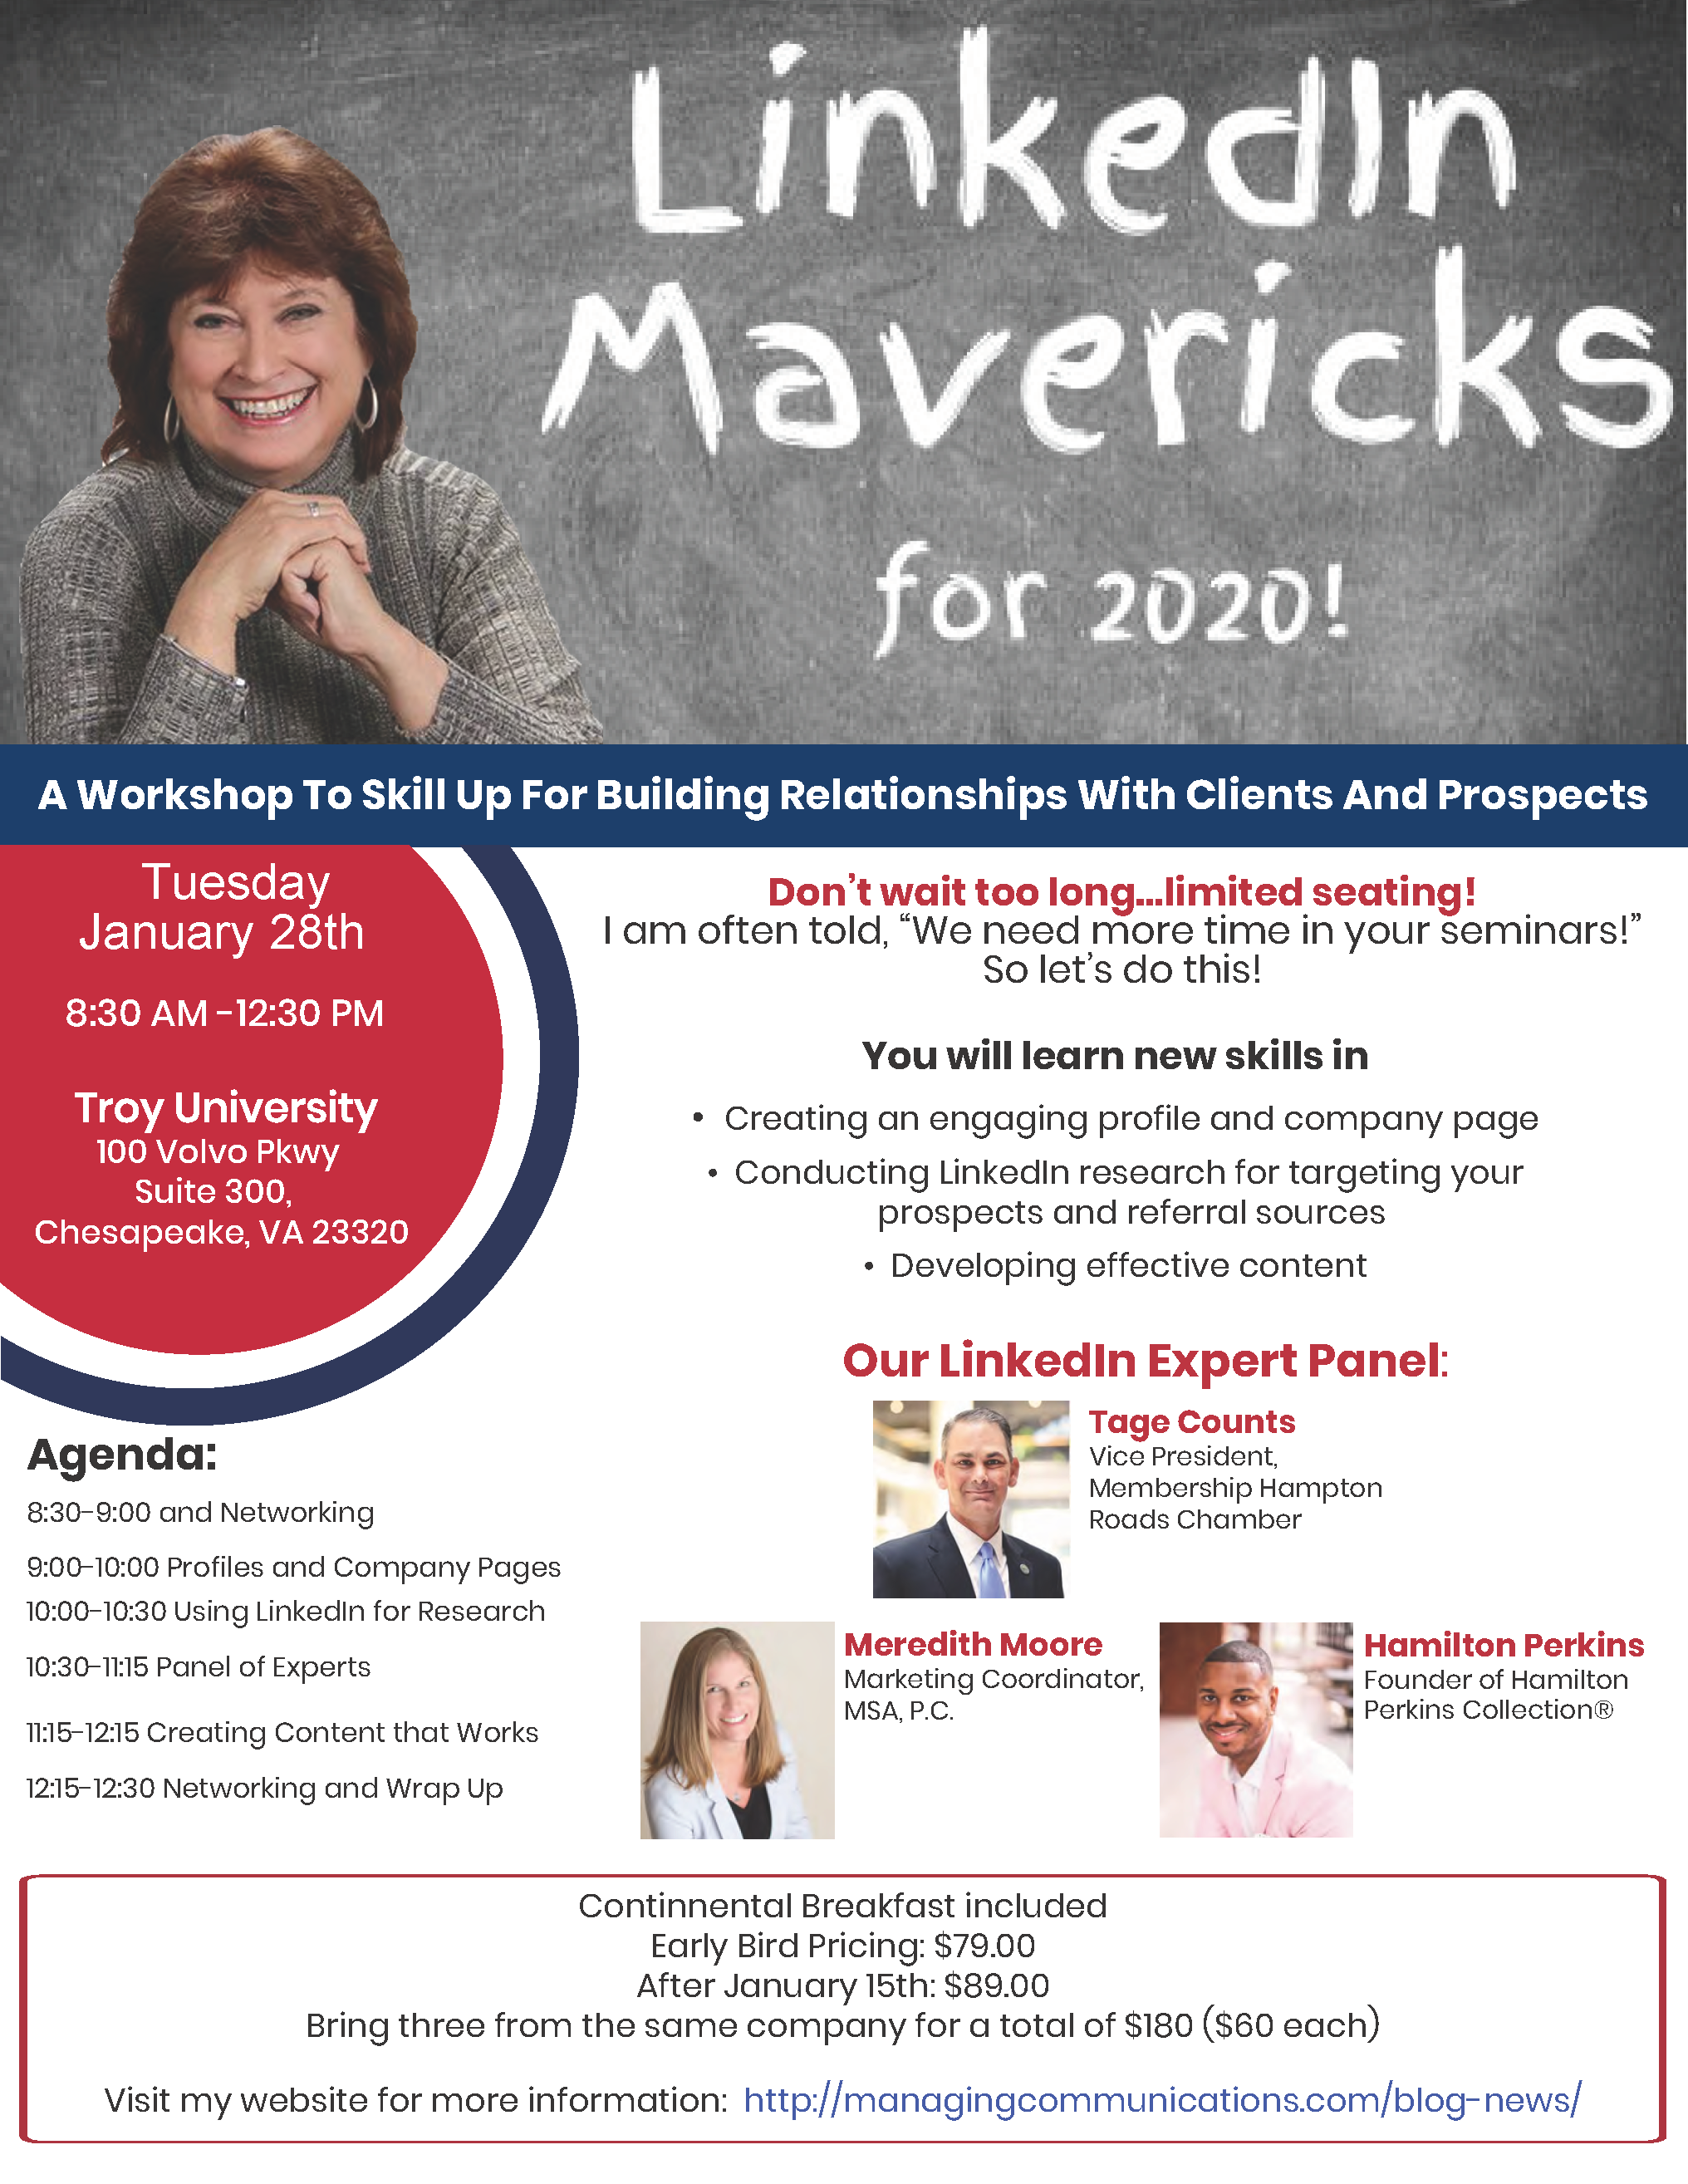 Linkedin Mavericks for 2020...We Still have a Few Seats!